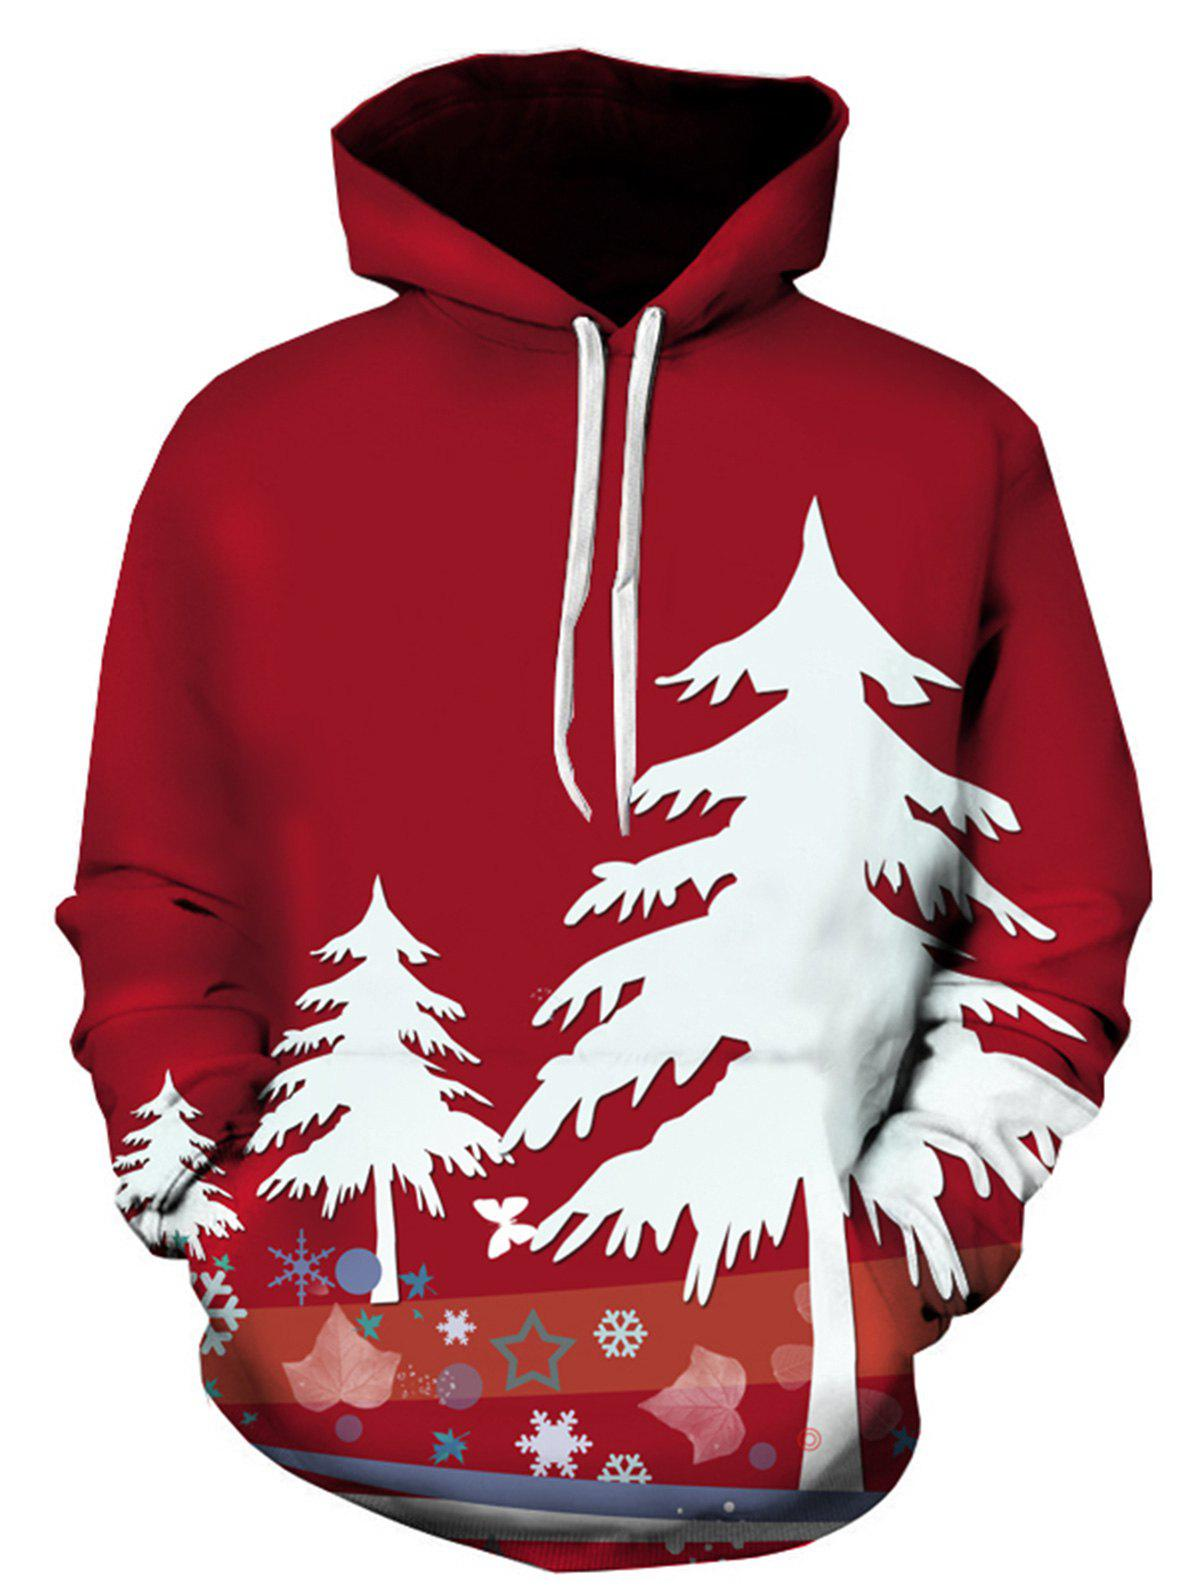 3D Christmas Tree Print Pullover HoodieMEN<br><br>Size: L; Color: COLORMIX; Material: Cotton,Polyester; Clothes Type: Hoodie; Shirt Length: Regular; Sleeve Length: Full; Style: Fashion; Patterns: 3D,Plants,Print; Thickness: Regular; Occasion: Casual,Daily Use,Going Out; Weight: 0.4800kg; Package Contents: 1 x Hoodie;